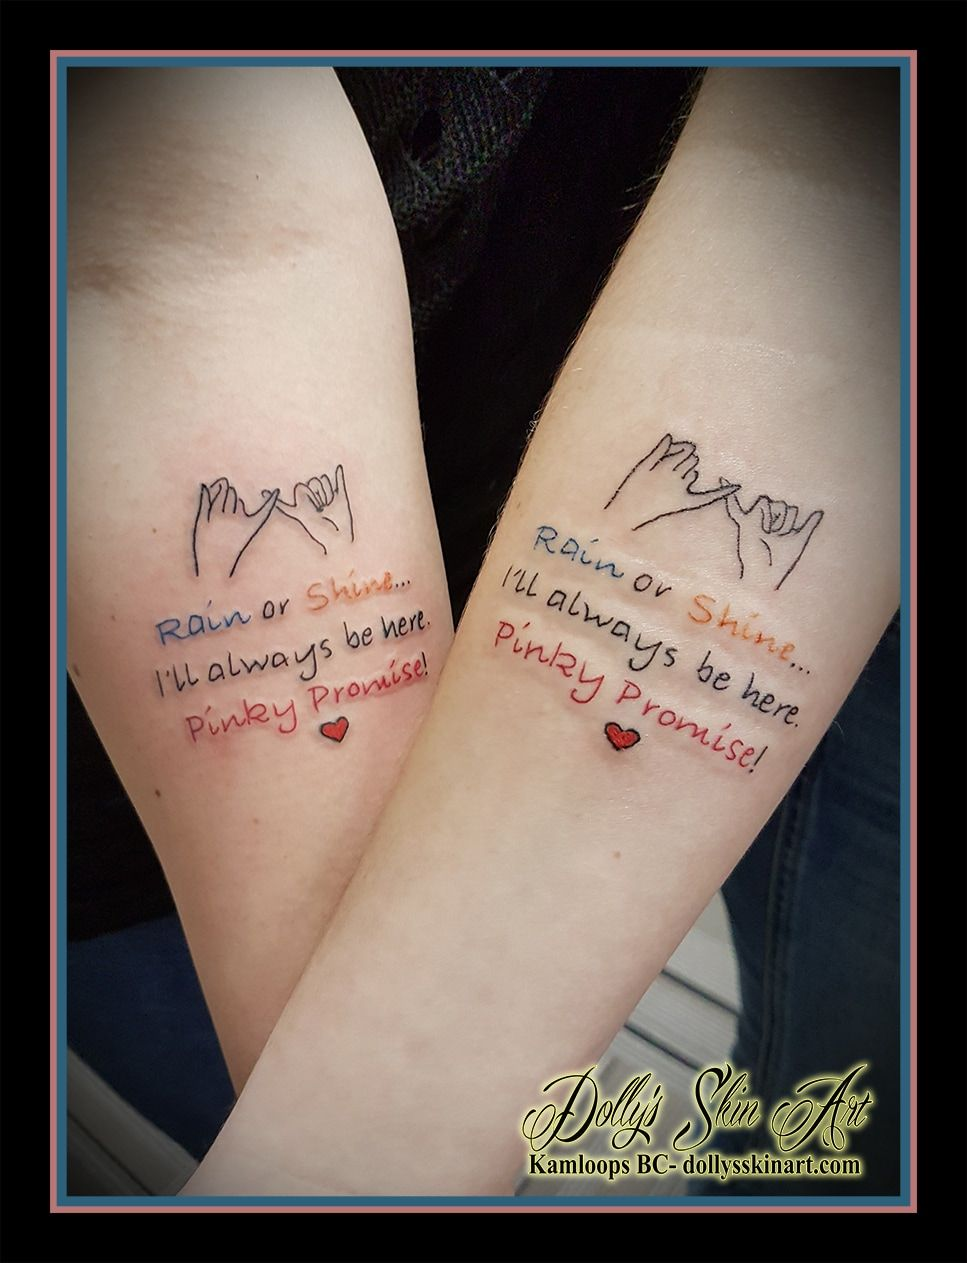 Dolly's Skin Art Promise tattoo, Pinky promise tattoo